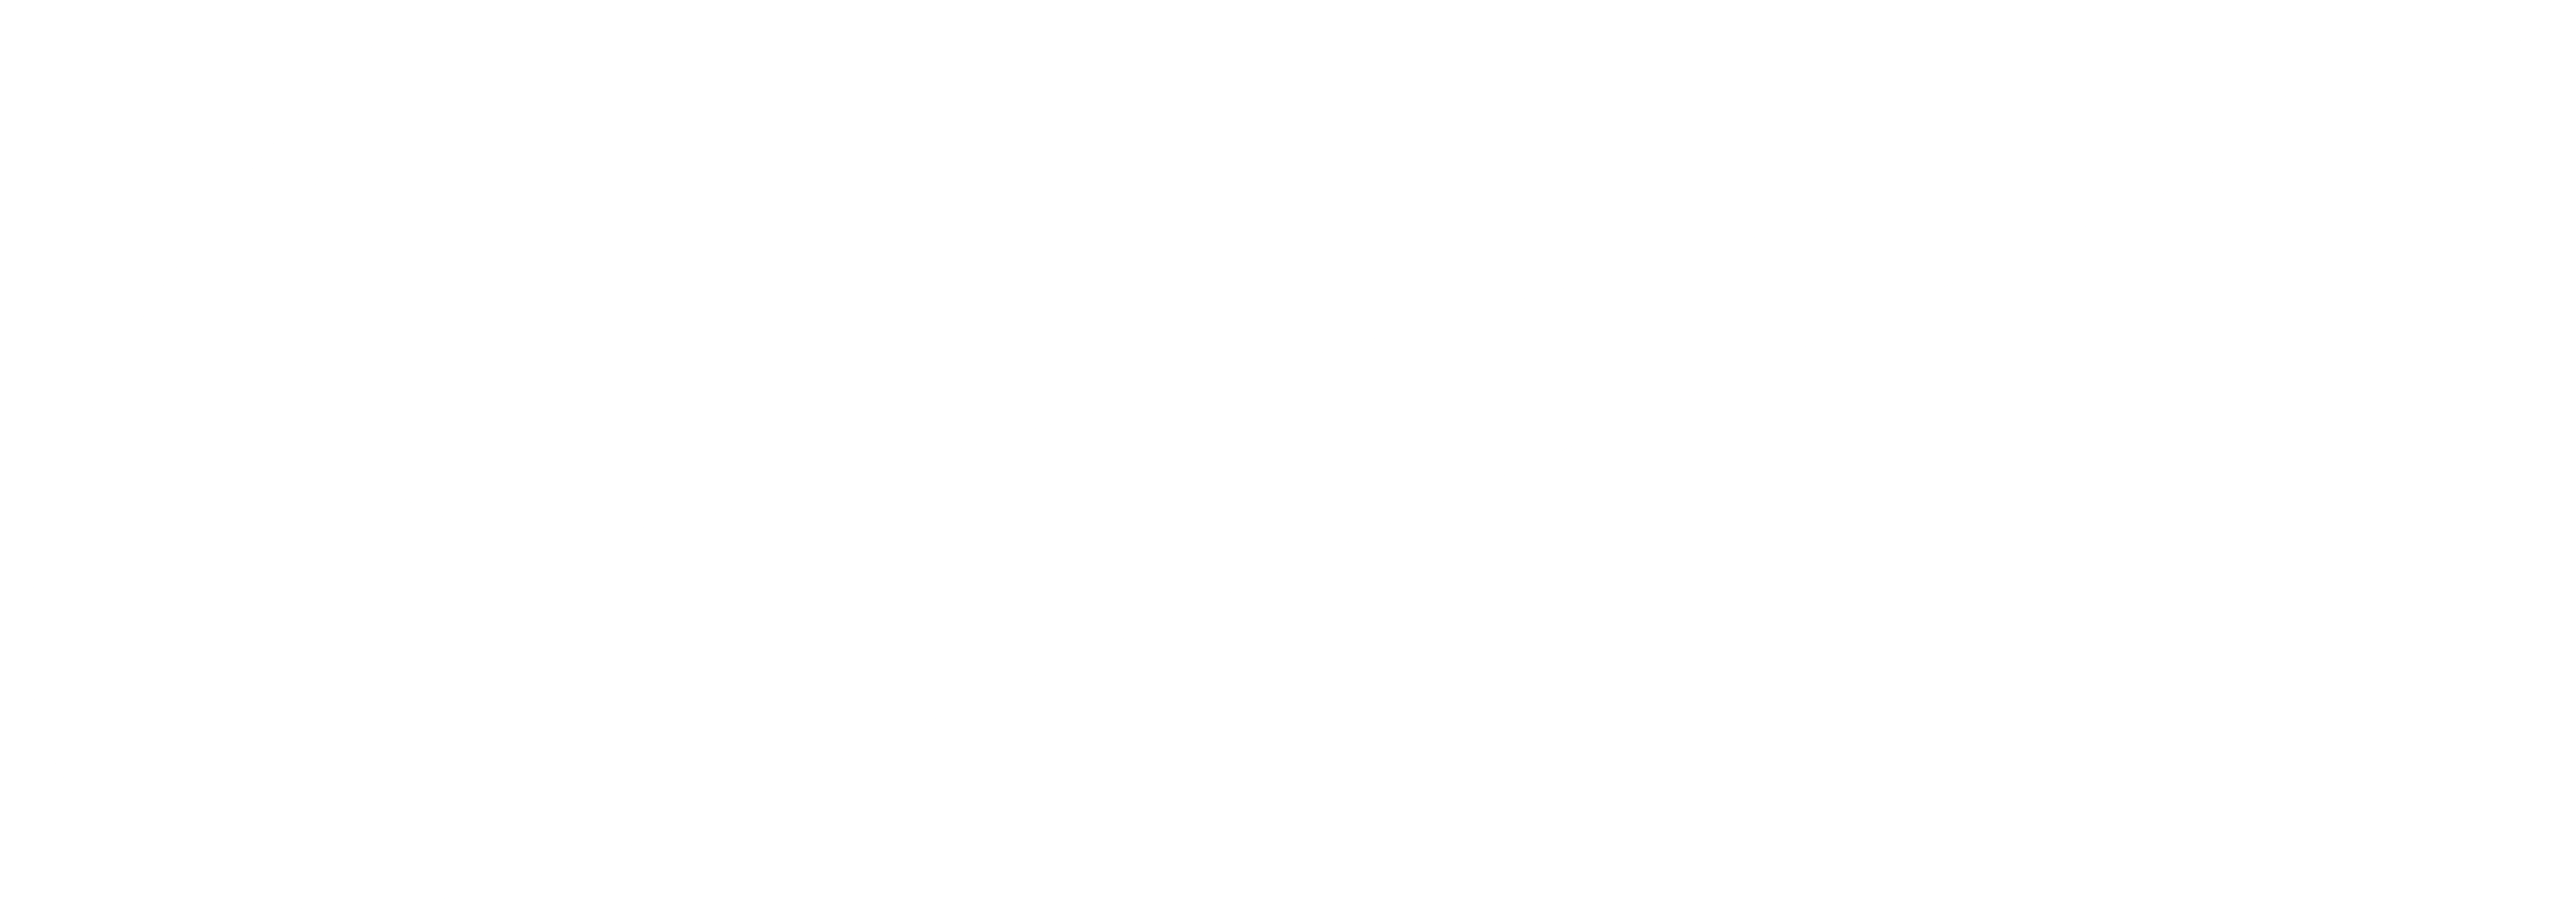 Swoop vector black and white. Nike logo png images